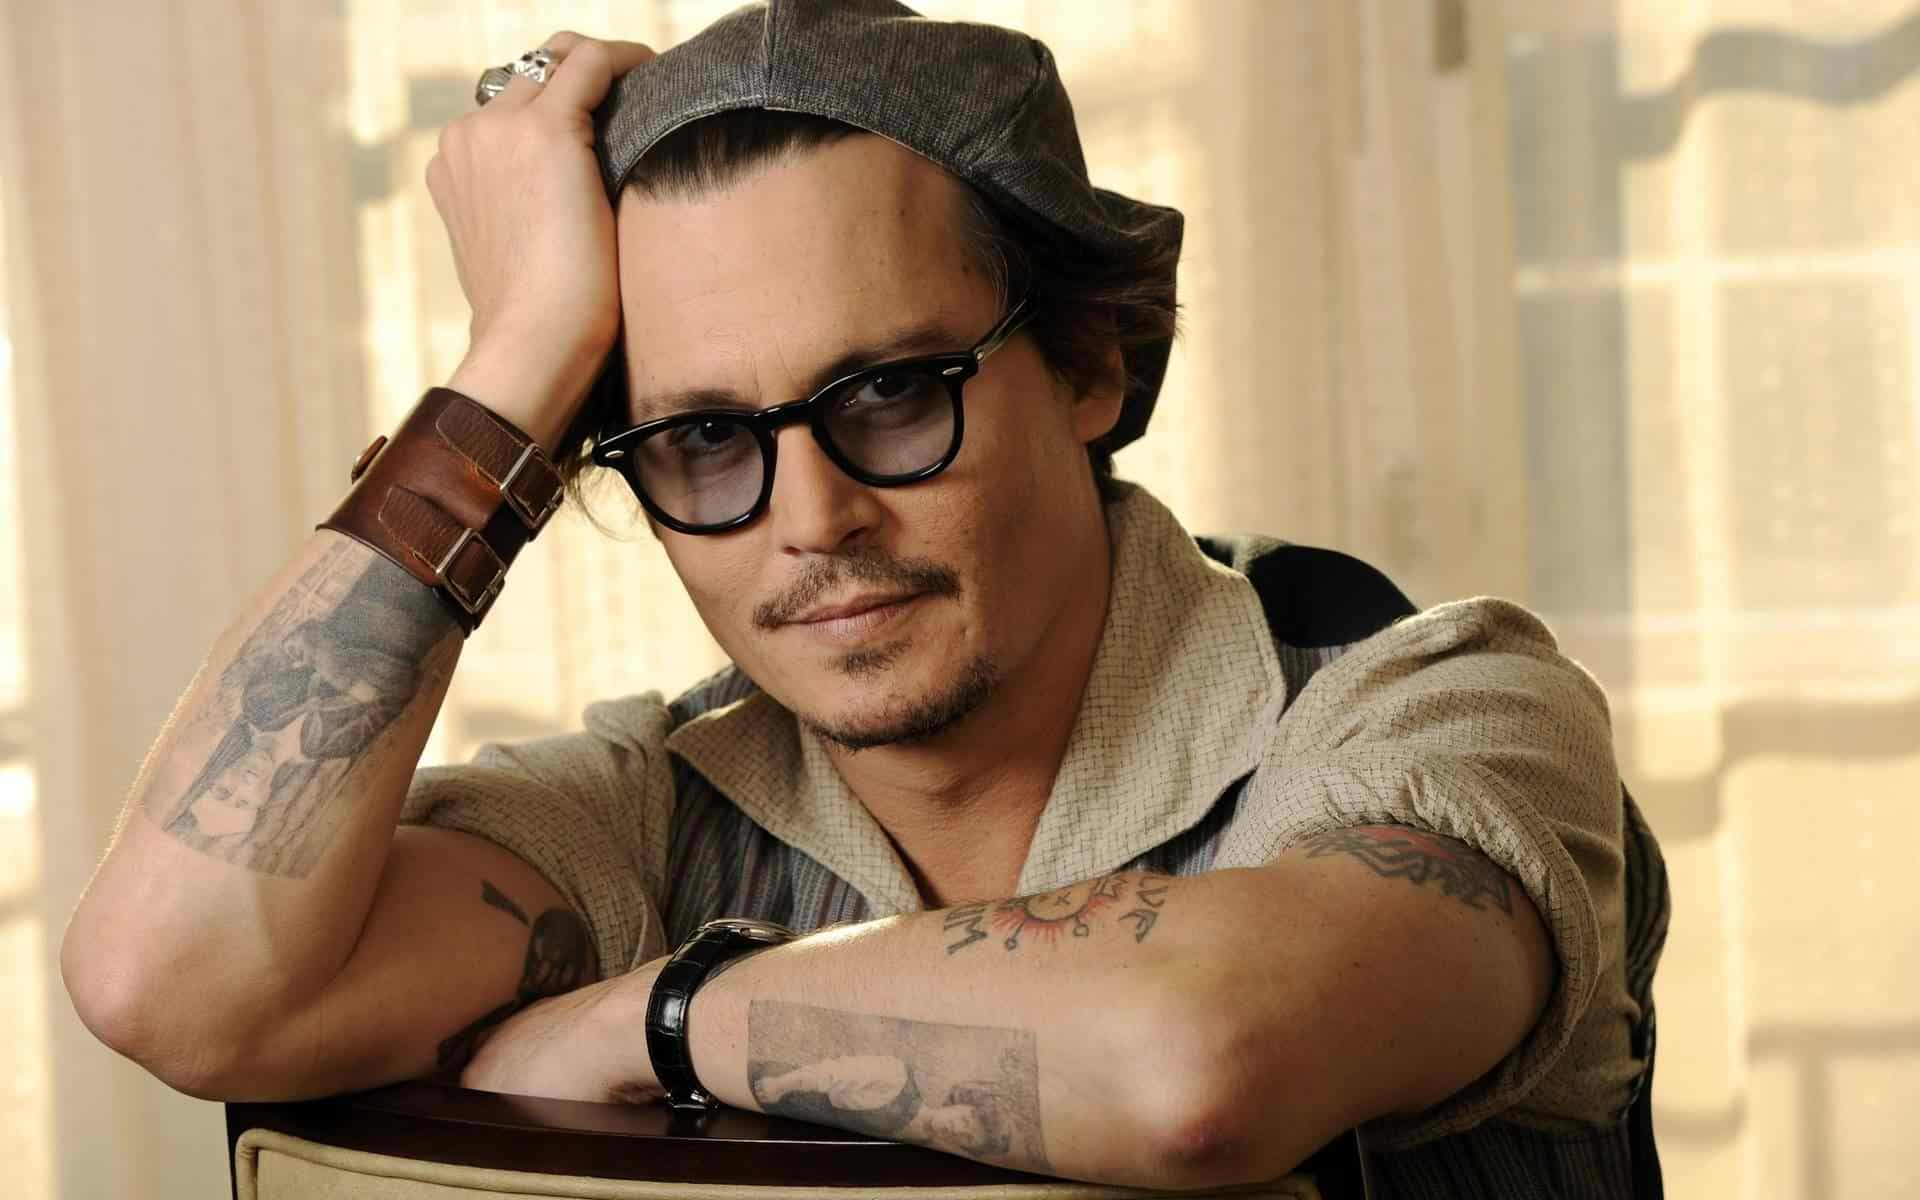 johnny_depp_takes_actor_man_tattoo_19007_1920x1200